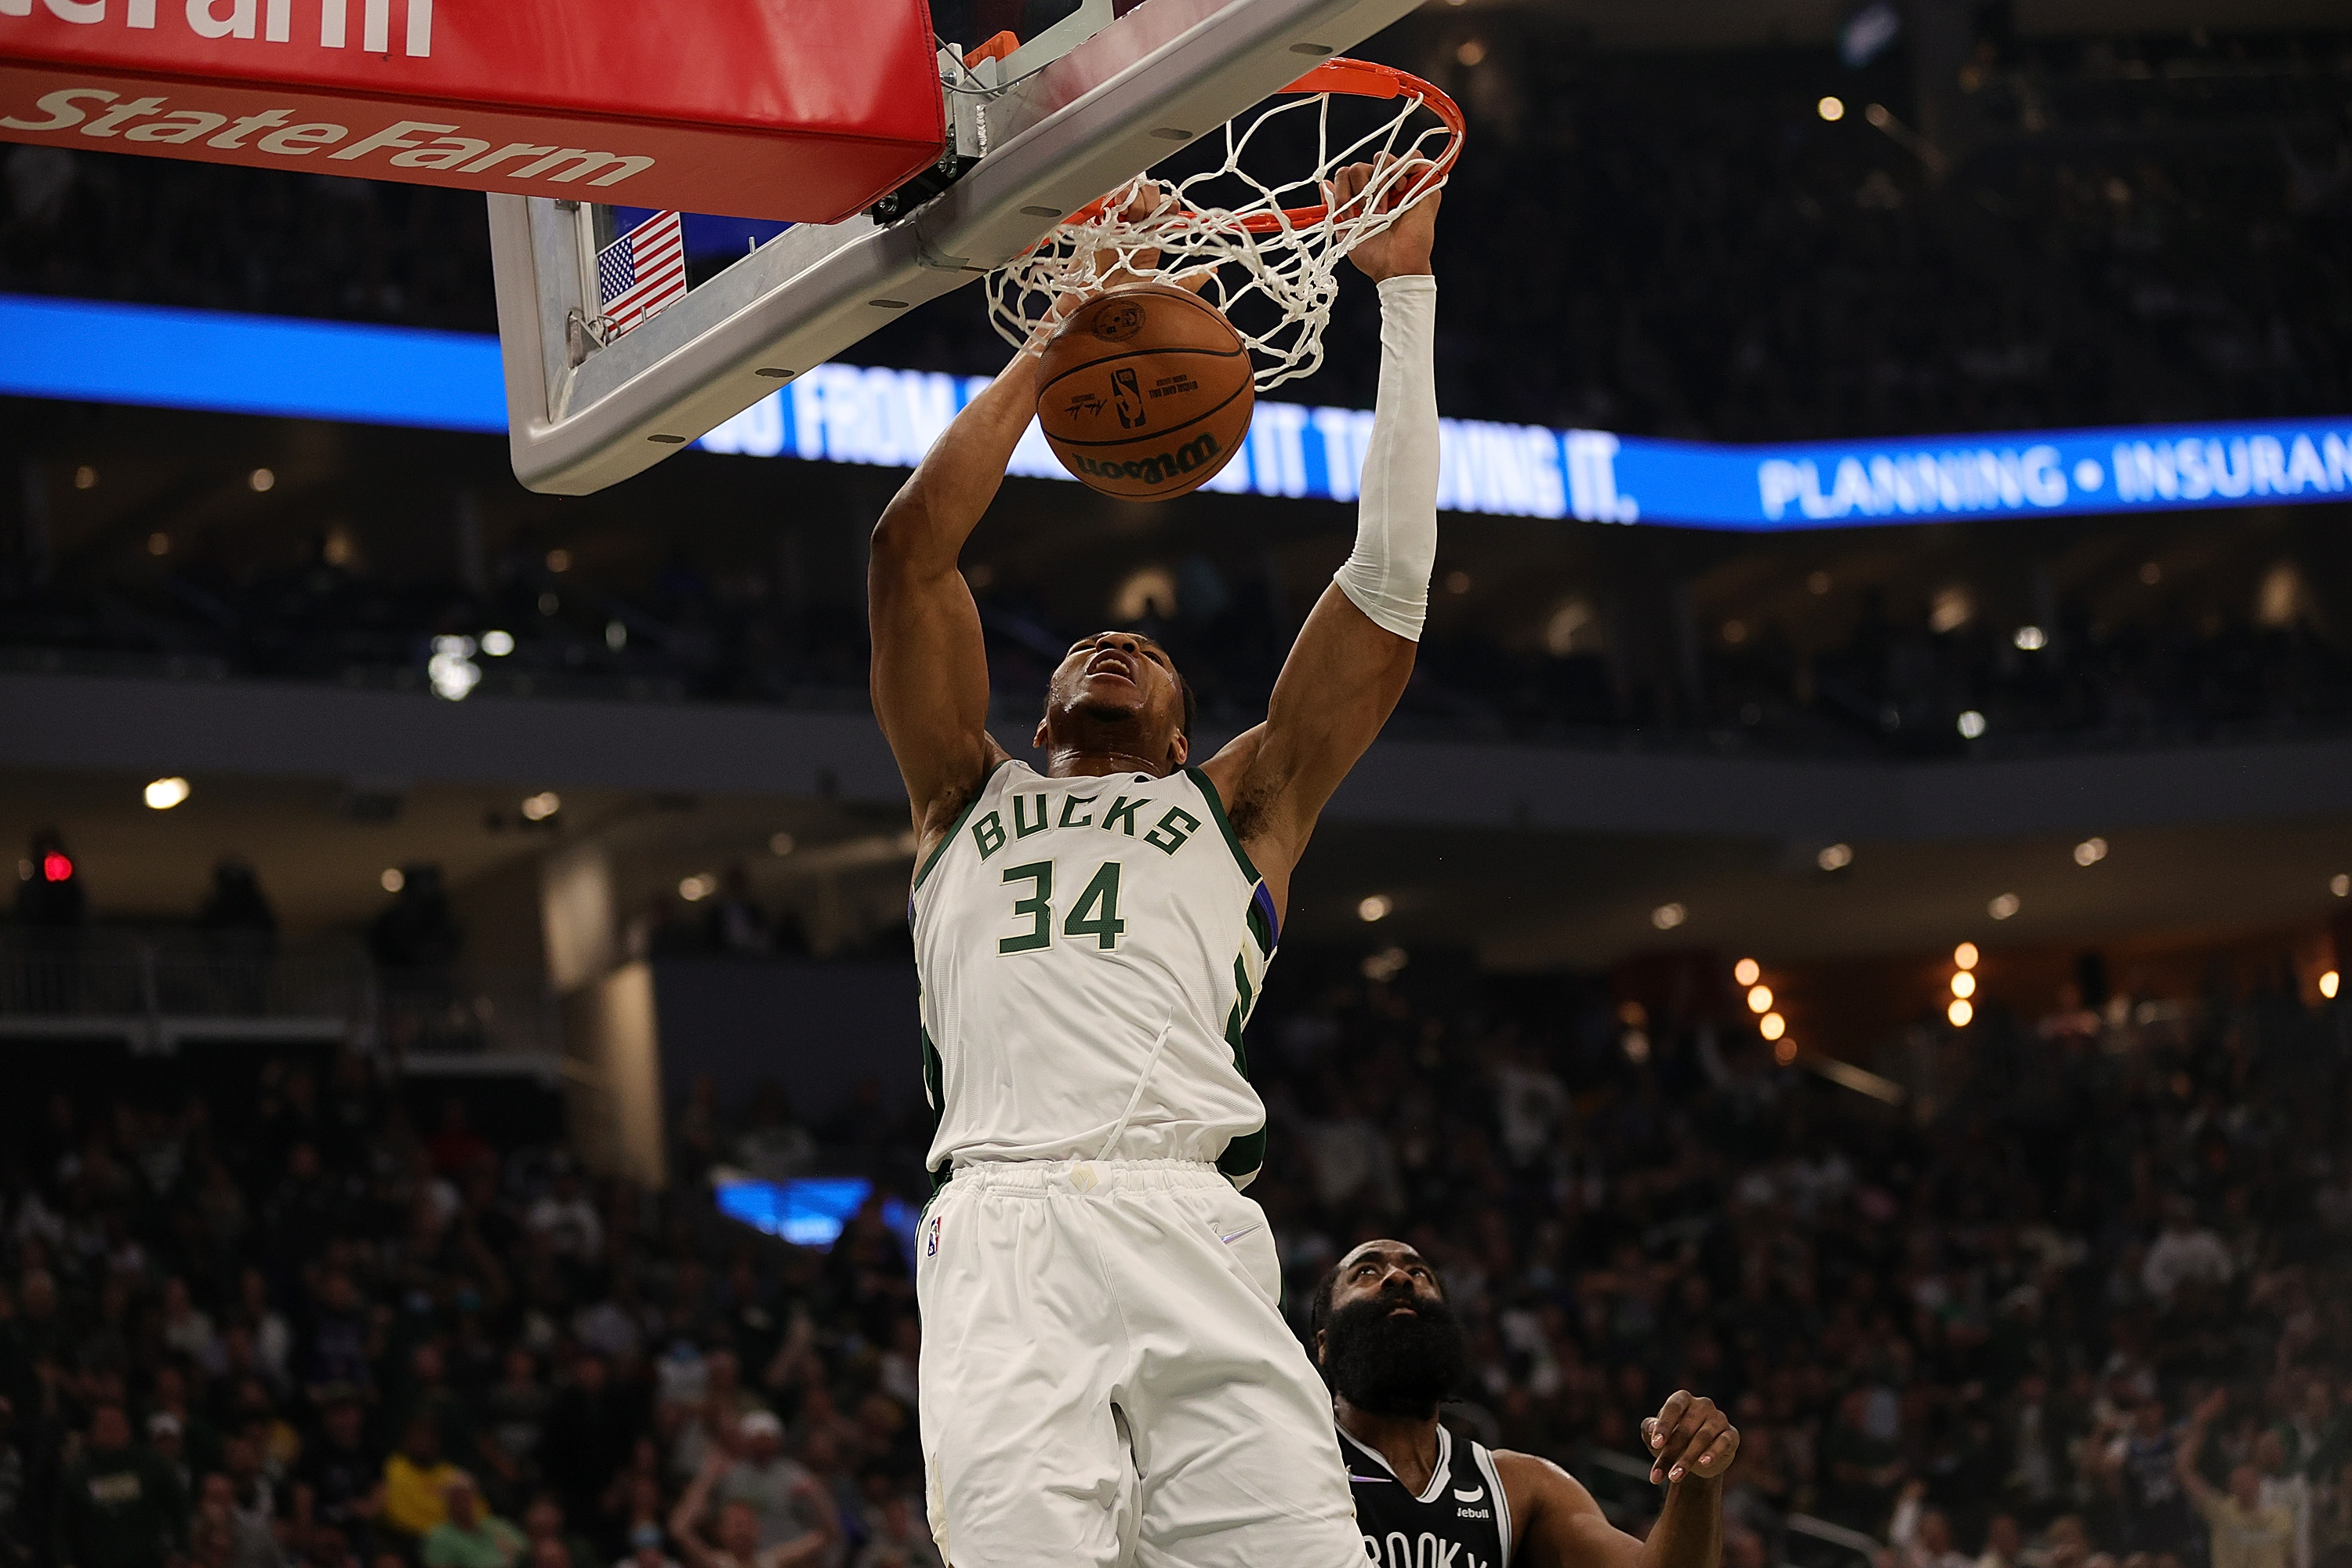 Giannis Antetokounmpo #34 of the Milwaukee Bucks dunks against the Brooklyn Nets during the first half of the season opener at the Fiserv Forum on October 19, 2021 in Milwaukee, Wisconsin.